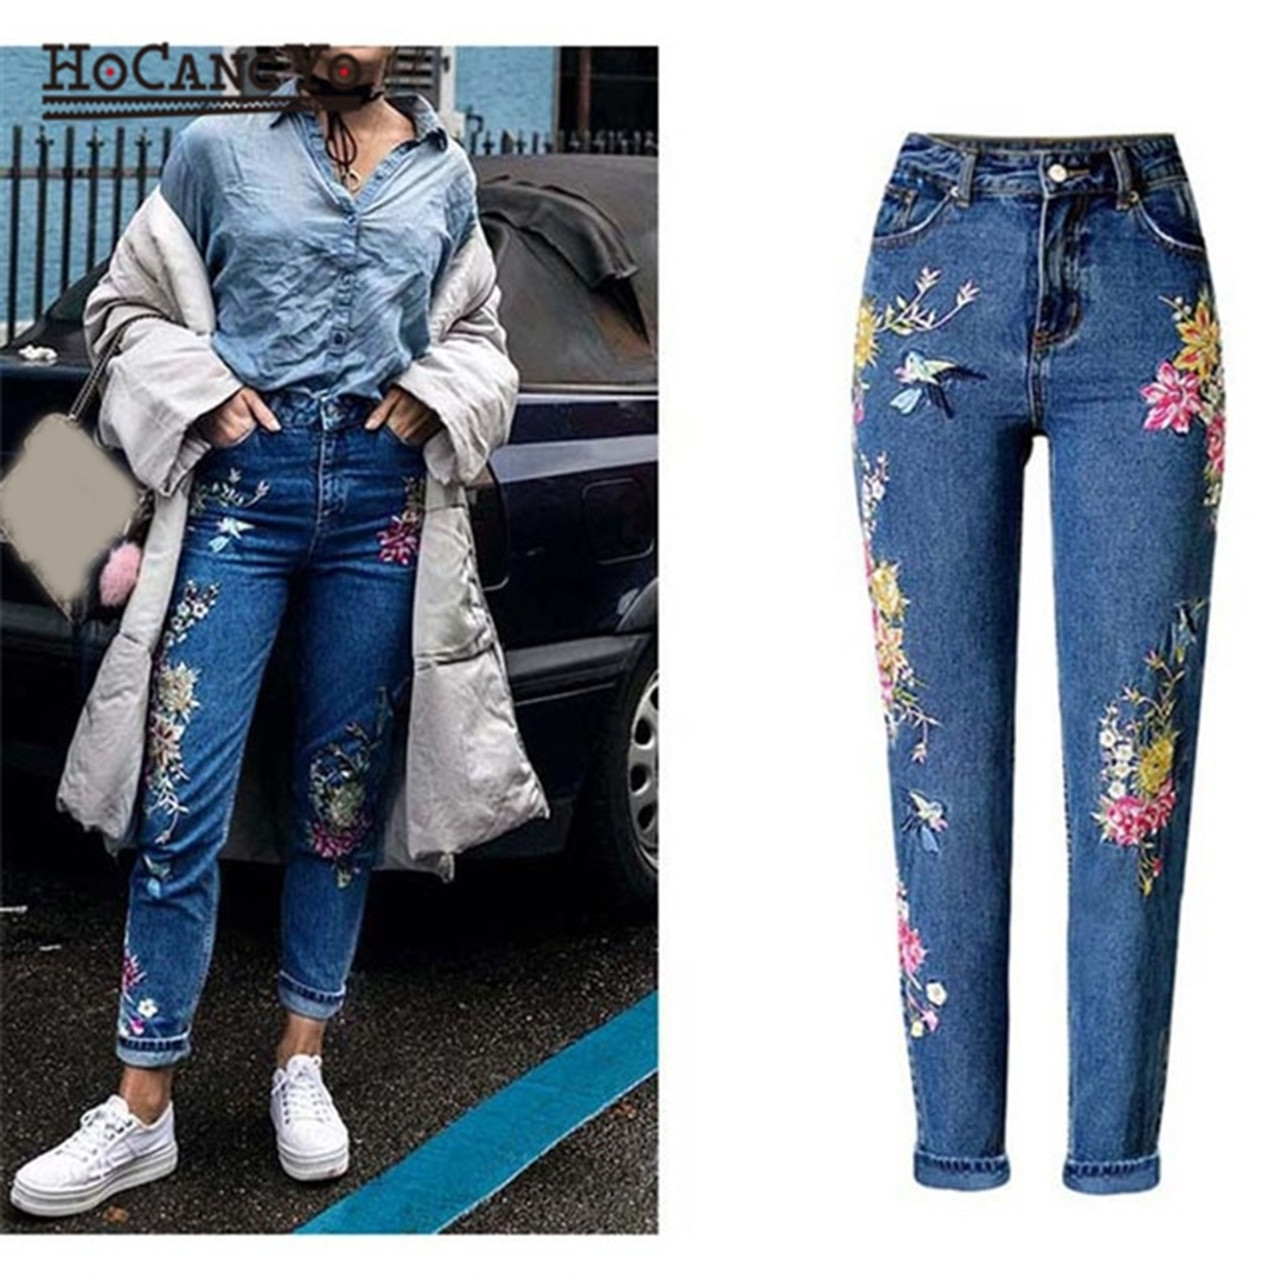 36c755f5dbfdd HCYO Women Embroidery Jeans High Waist Slim Straight Jeans Trousers Plus  Size Womens Casual Inelastic Cotton ...